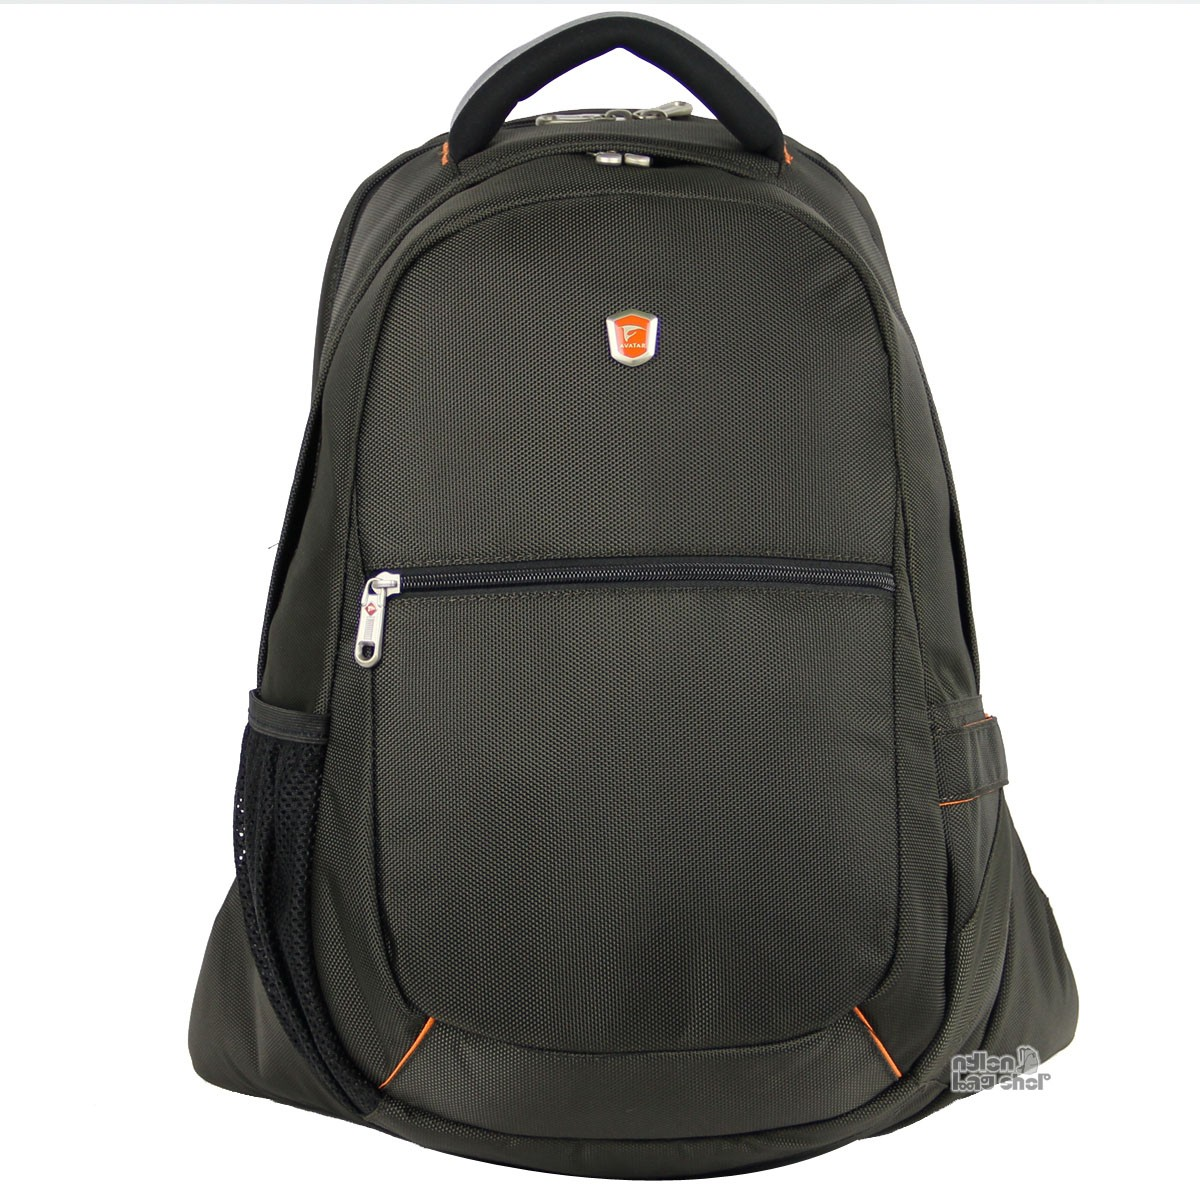 14 Inch Laptop Backpack 7ndyyj35